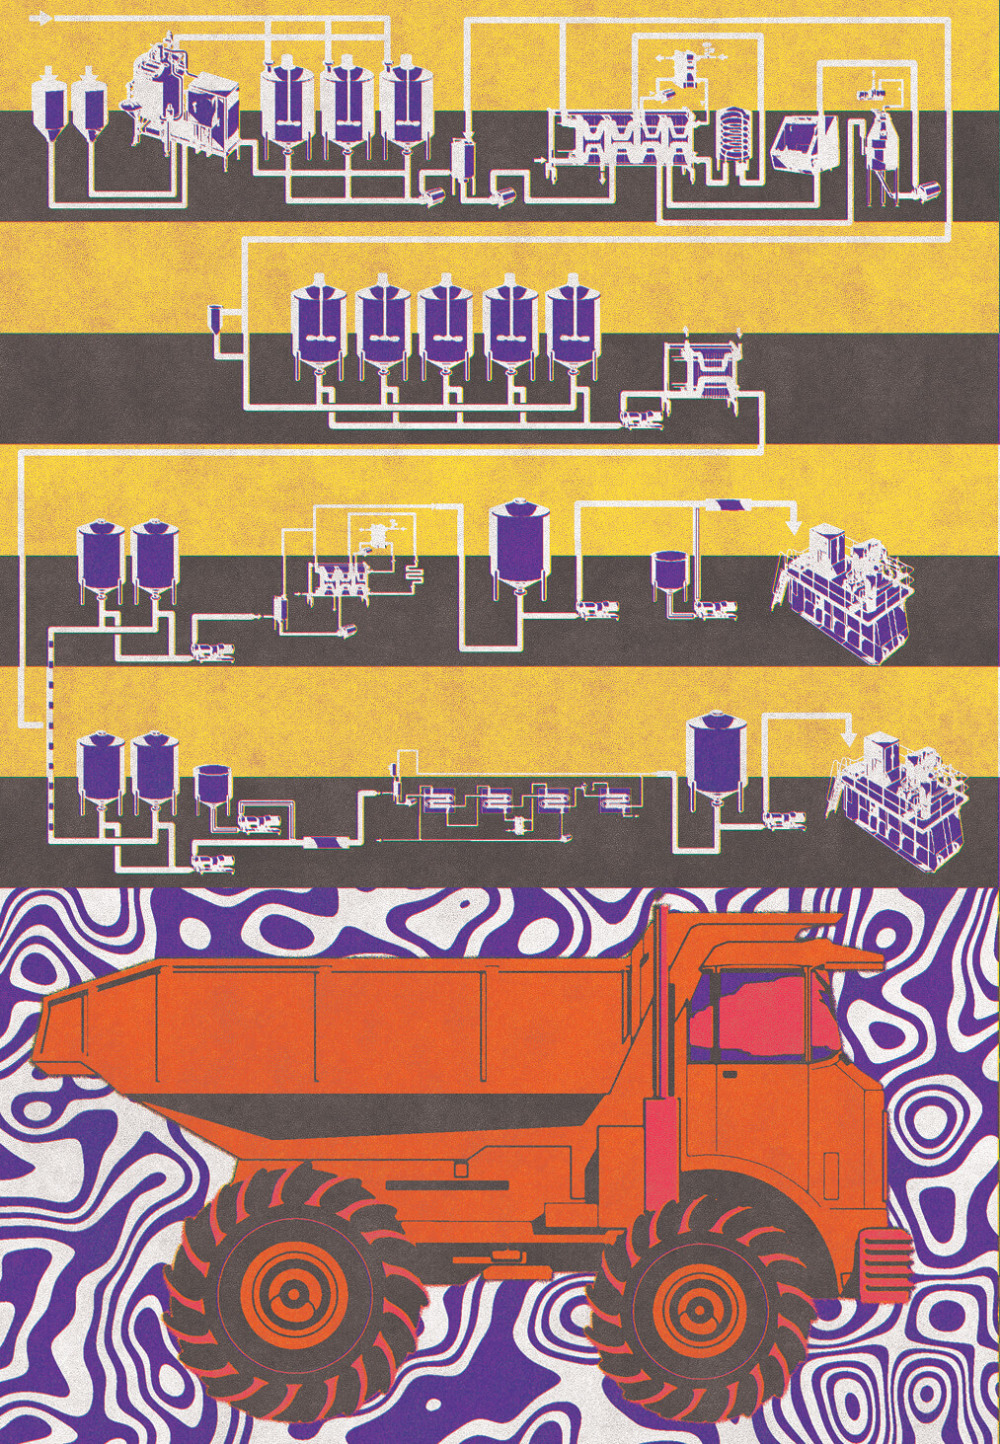 An orange dump truck is positioned below a black and yellow circuitry schematic.